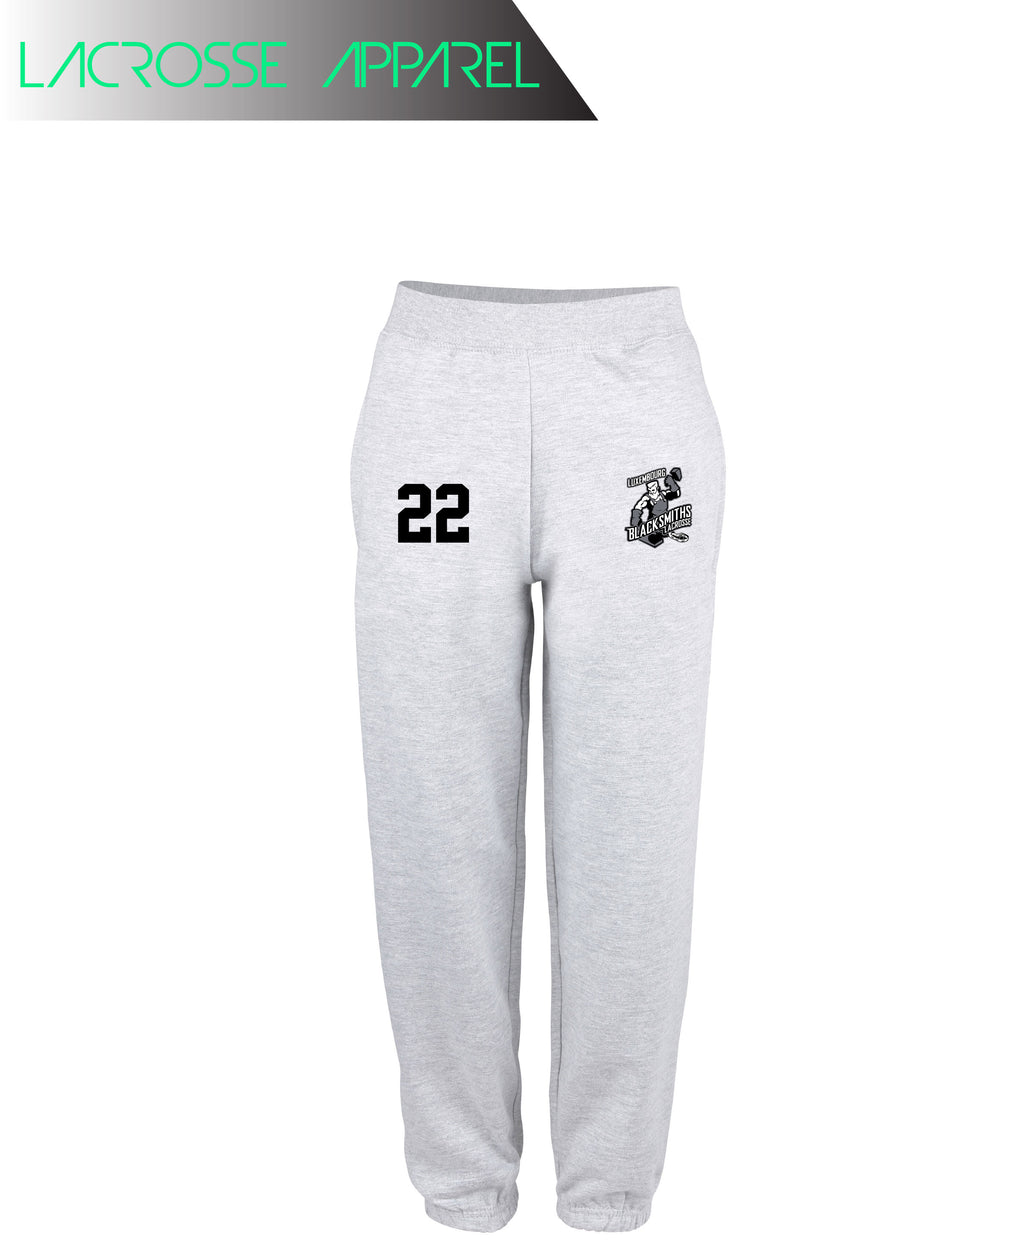 Luxembourg Blacksmiths Sweatpants